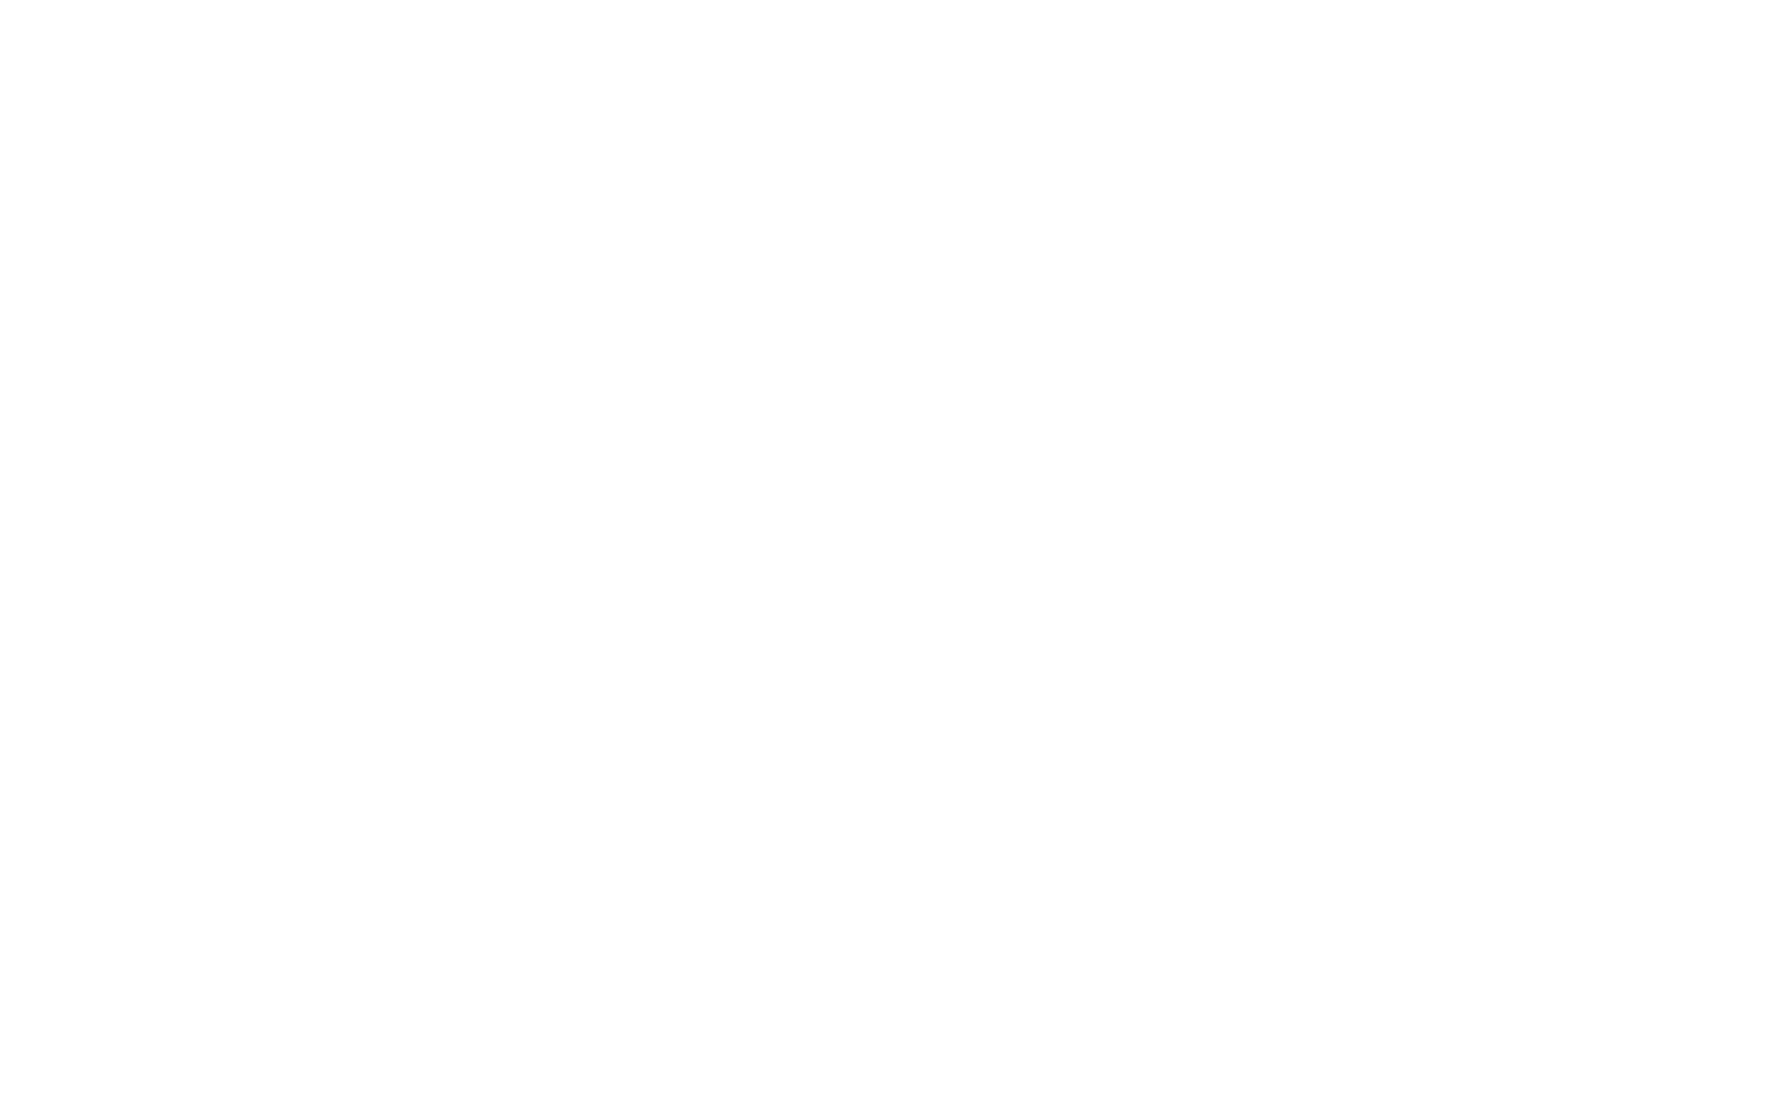 Mojo Pitch logo